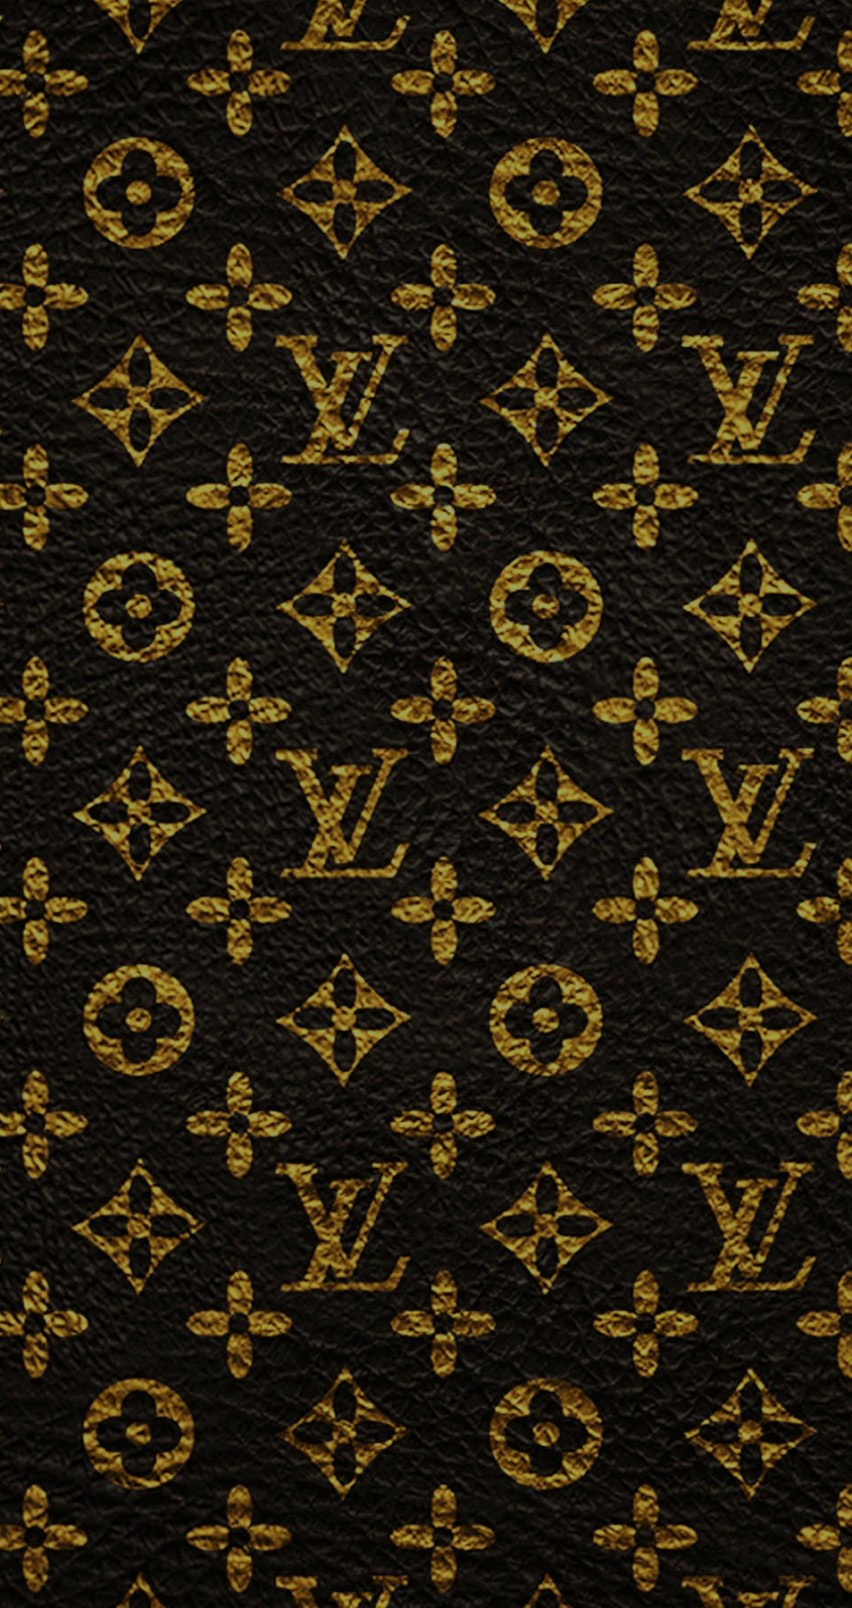 Louis Vuitton Pattern Wallpaper for Apple iPhone 6 / 6s